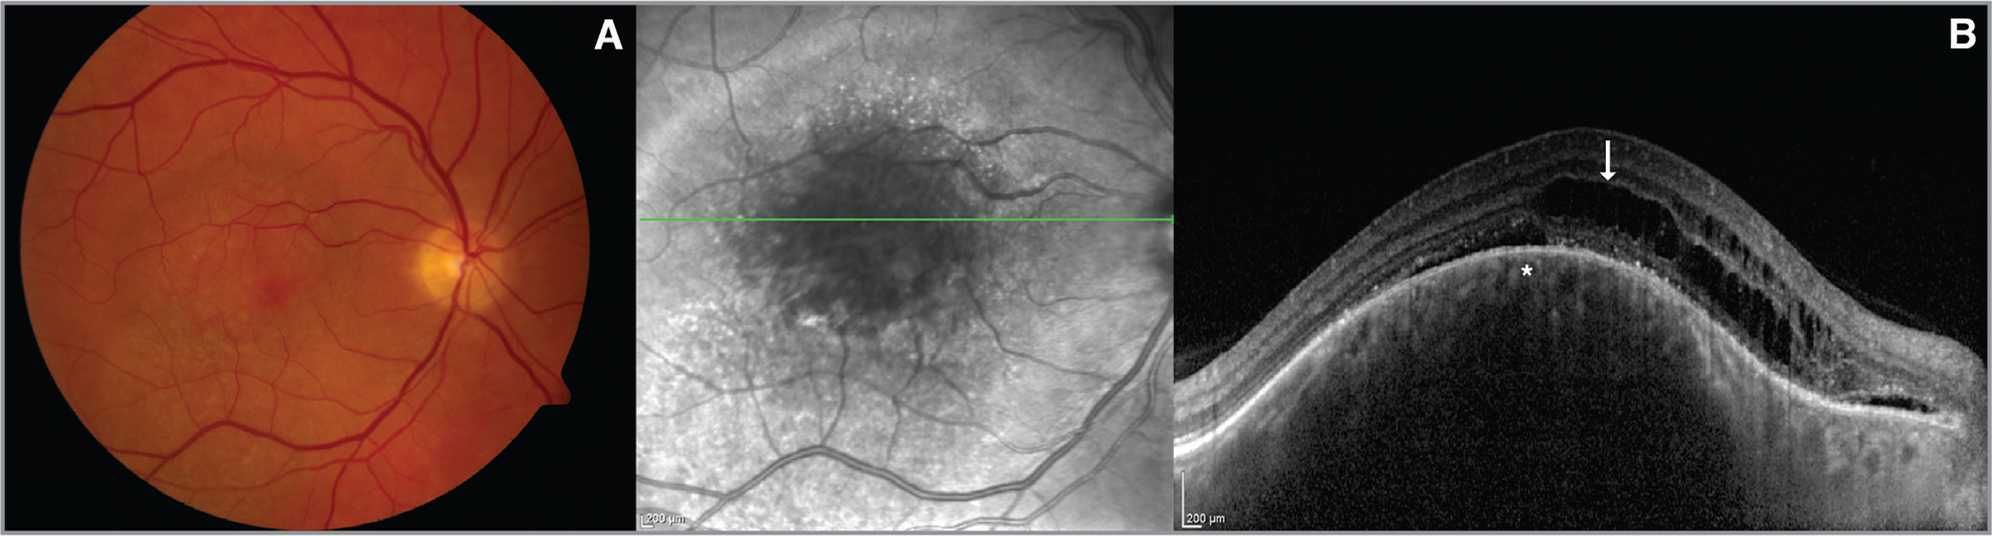 (A) A choroidal hemangioma on the macula. (B) Normal-looking honeycomb-like choriocapillaris (asterisk) with overlying intraretinal fluid (arrow) were visible on enhanced depth imaging optical coherence tomography.